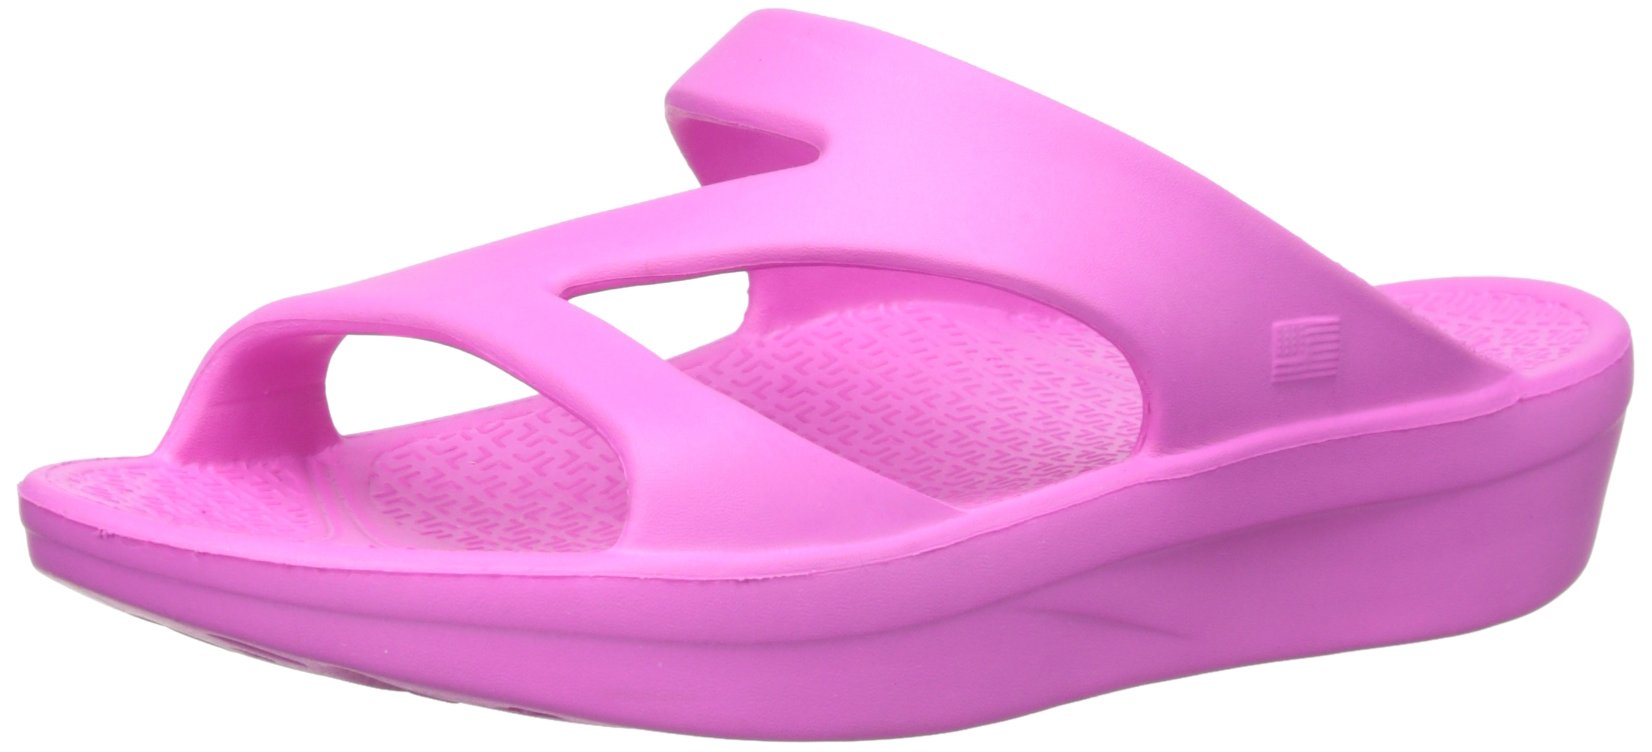 Telic Z-Strap Soft Sandal Shoe Footwear by, Pink Flamingo, S by Telic